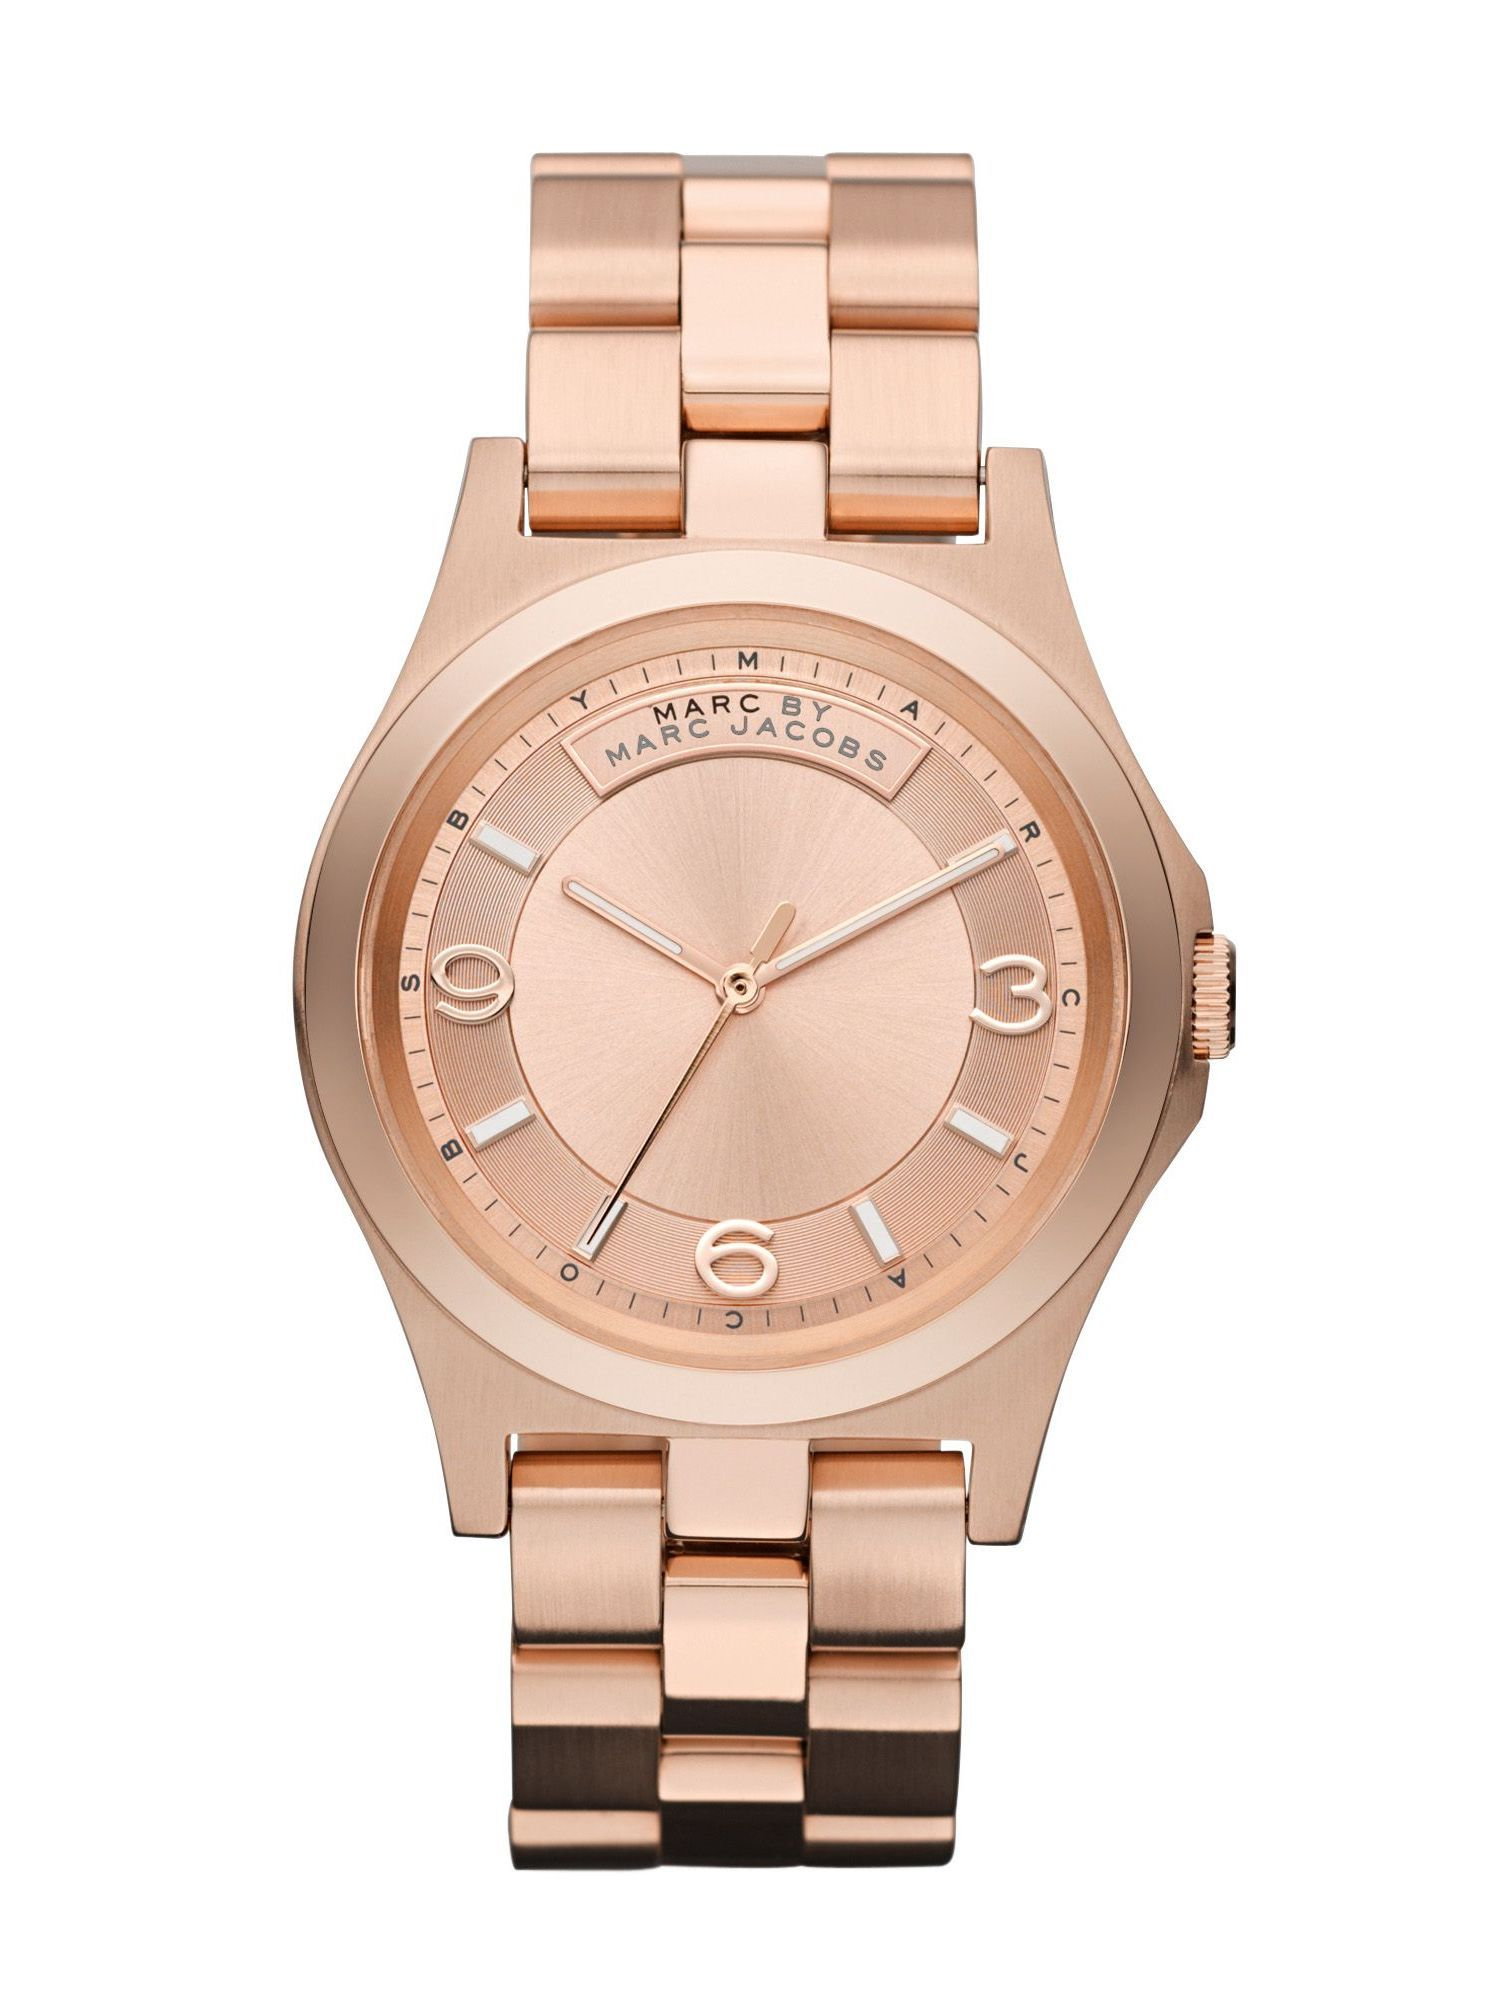 marc by marc jacobs baby dave mens watch in metallic for men lyst gallery